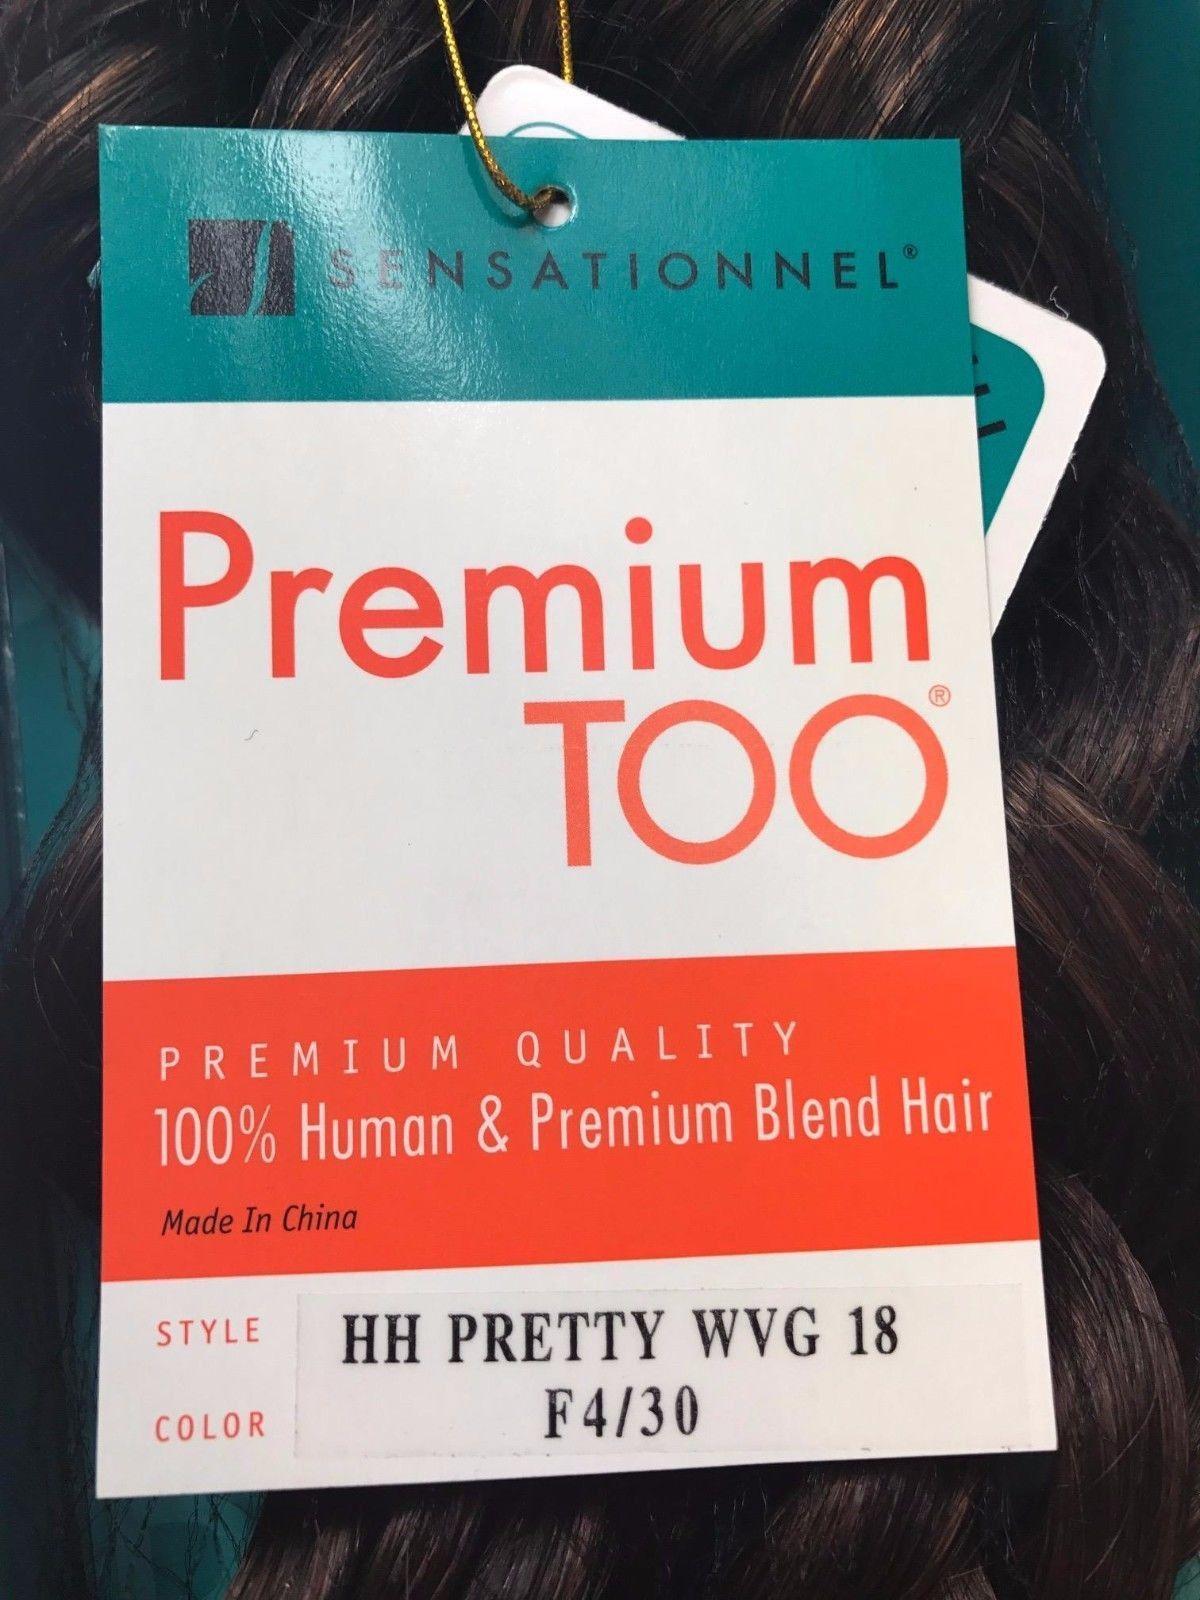 Sensationnel Premium Too Hh Pretty Wvg Human Weave Blend 18 Color